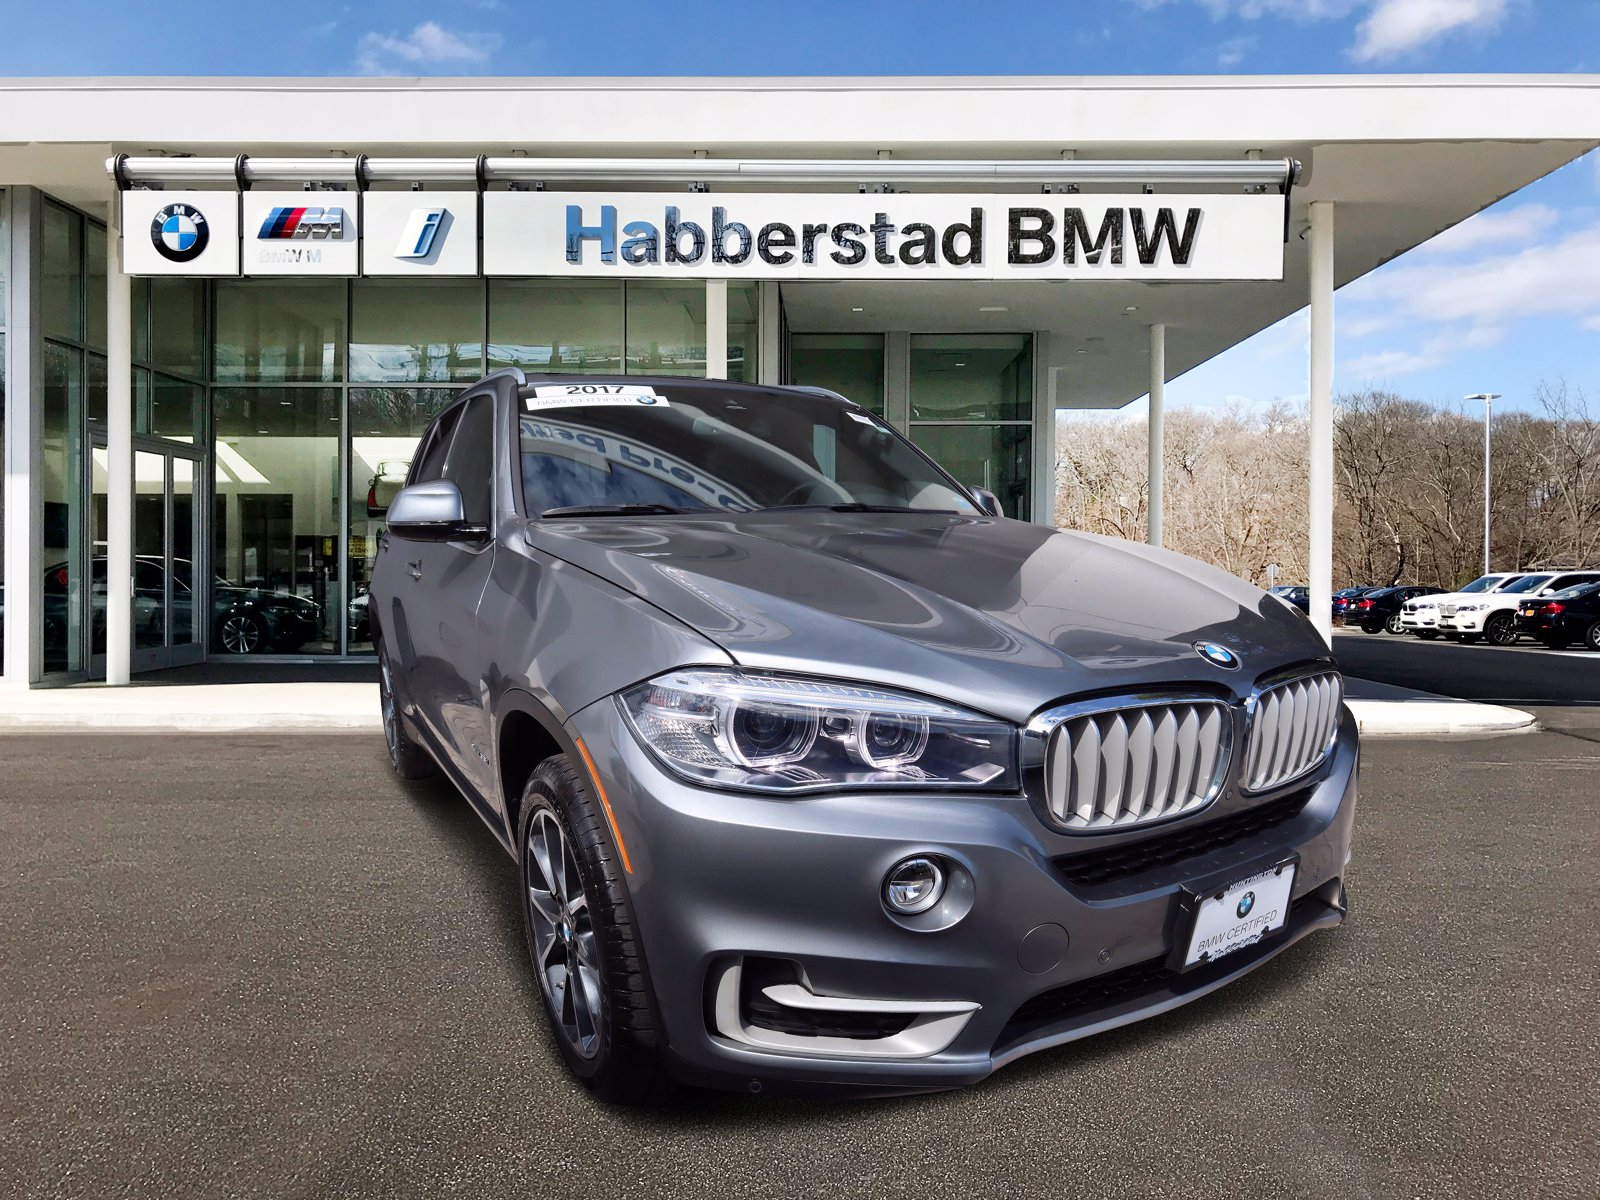 Certified Pre Owned 2017 Bmw X5 Xdrive35i Sports Activity Vehicle Sport Utility In Bay Shore Bb5446 Habberstad Bmw Of Bay Shore